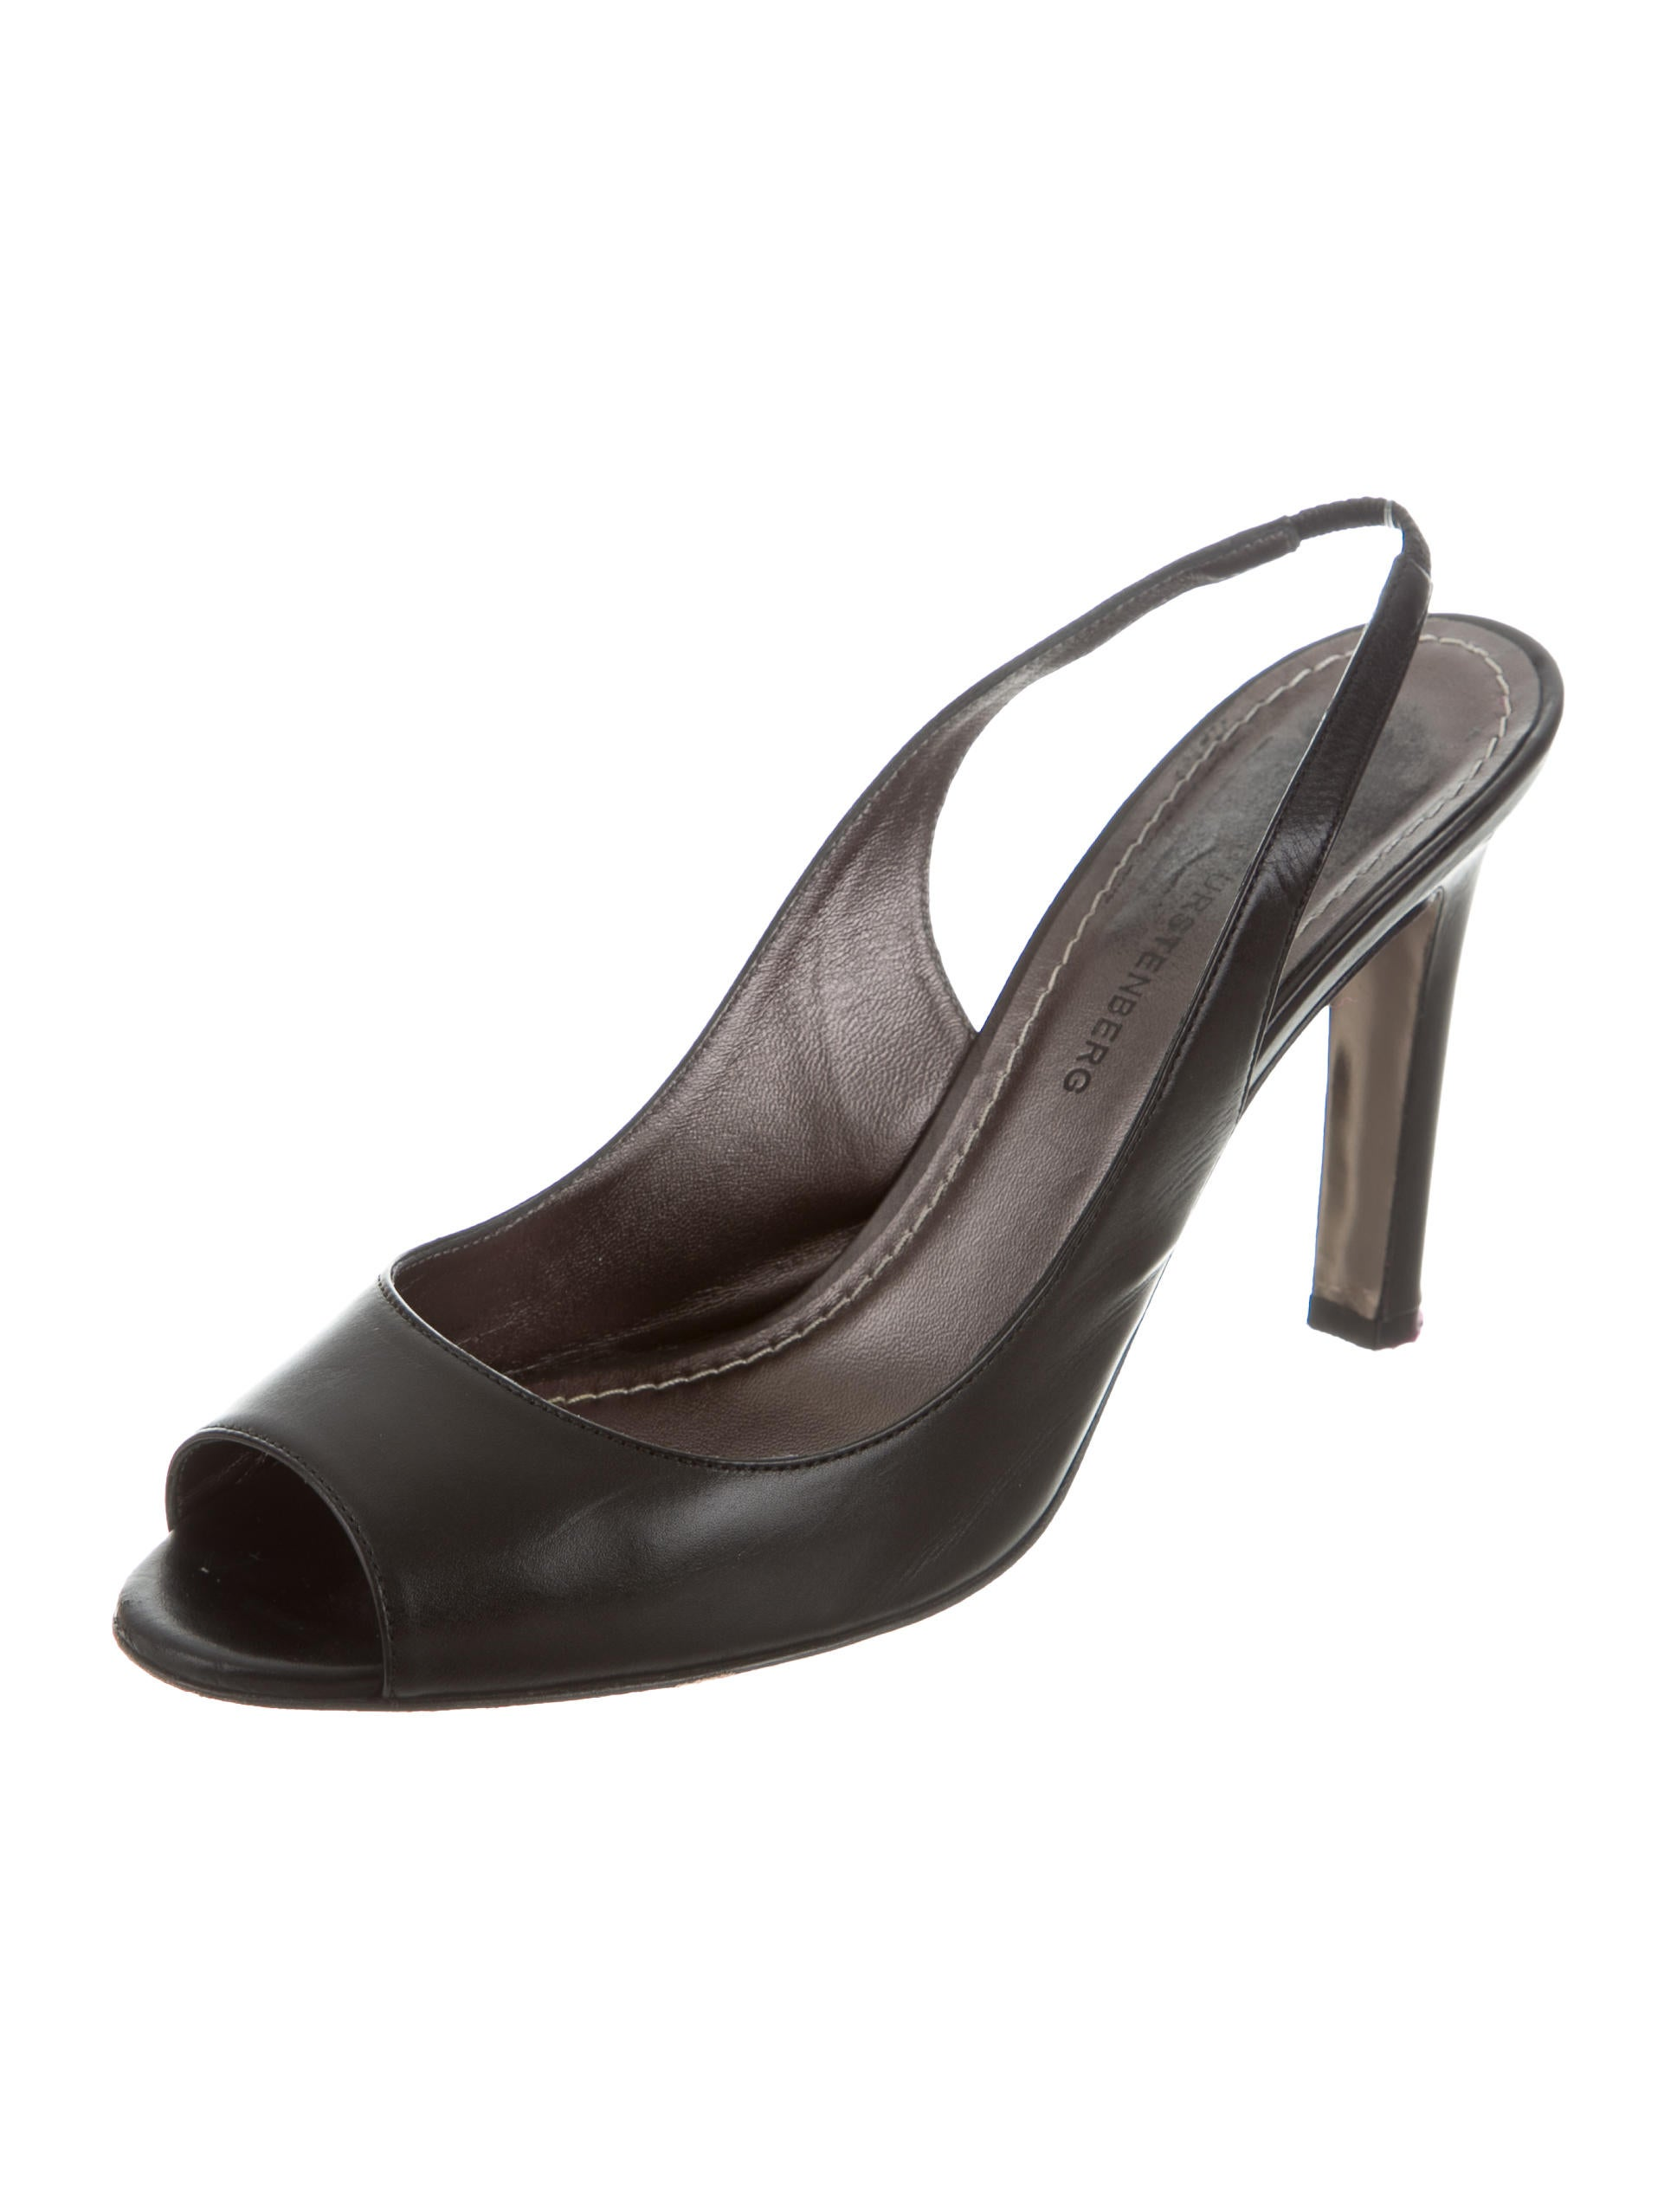 Roger Vivier Belle Vivier Pumps In Patent Leather - Belle Vivier pumps in patent leather with branded metal buckle. Belle Vivier, one of the icons of the Maison, was created back in .